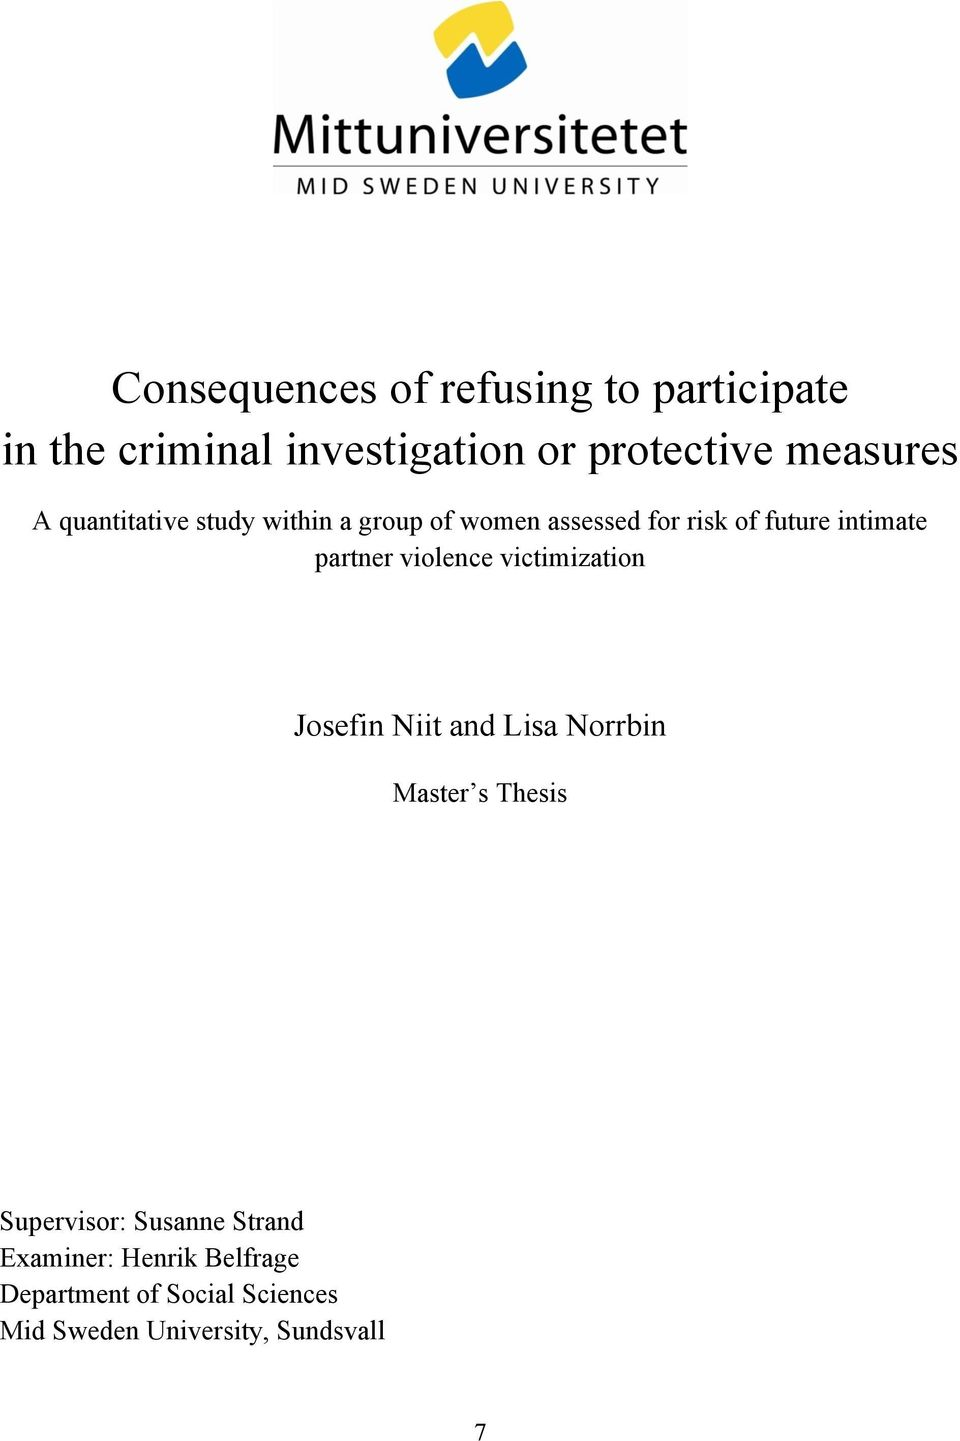 violence victimization Josefin Niit and Lisa Norrbin Master s Thesis Supervisor: Susanne